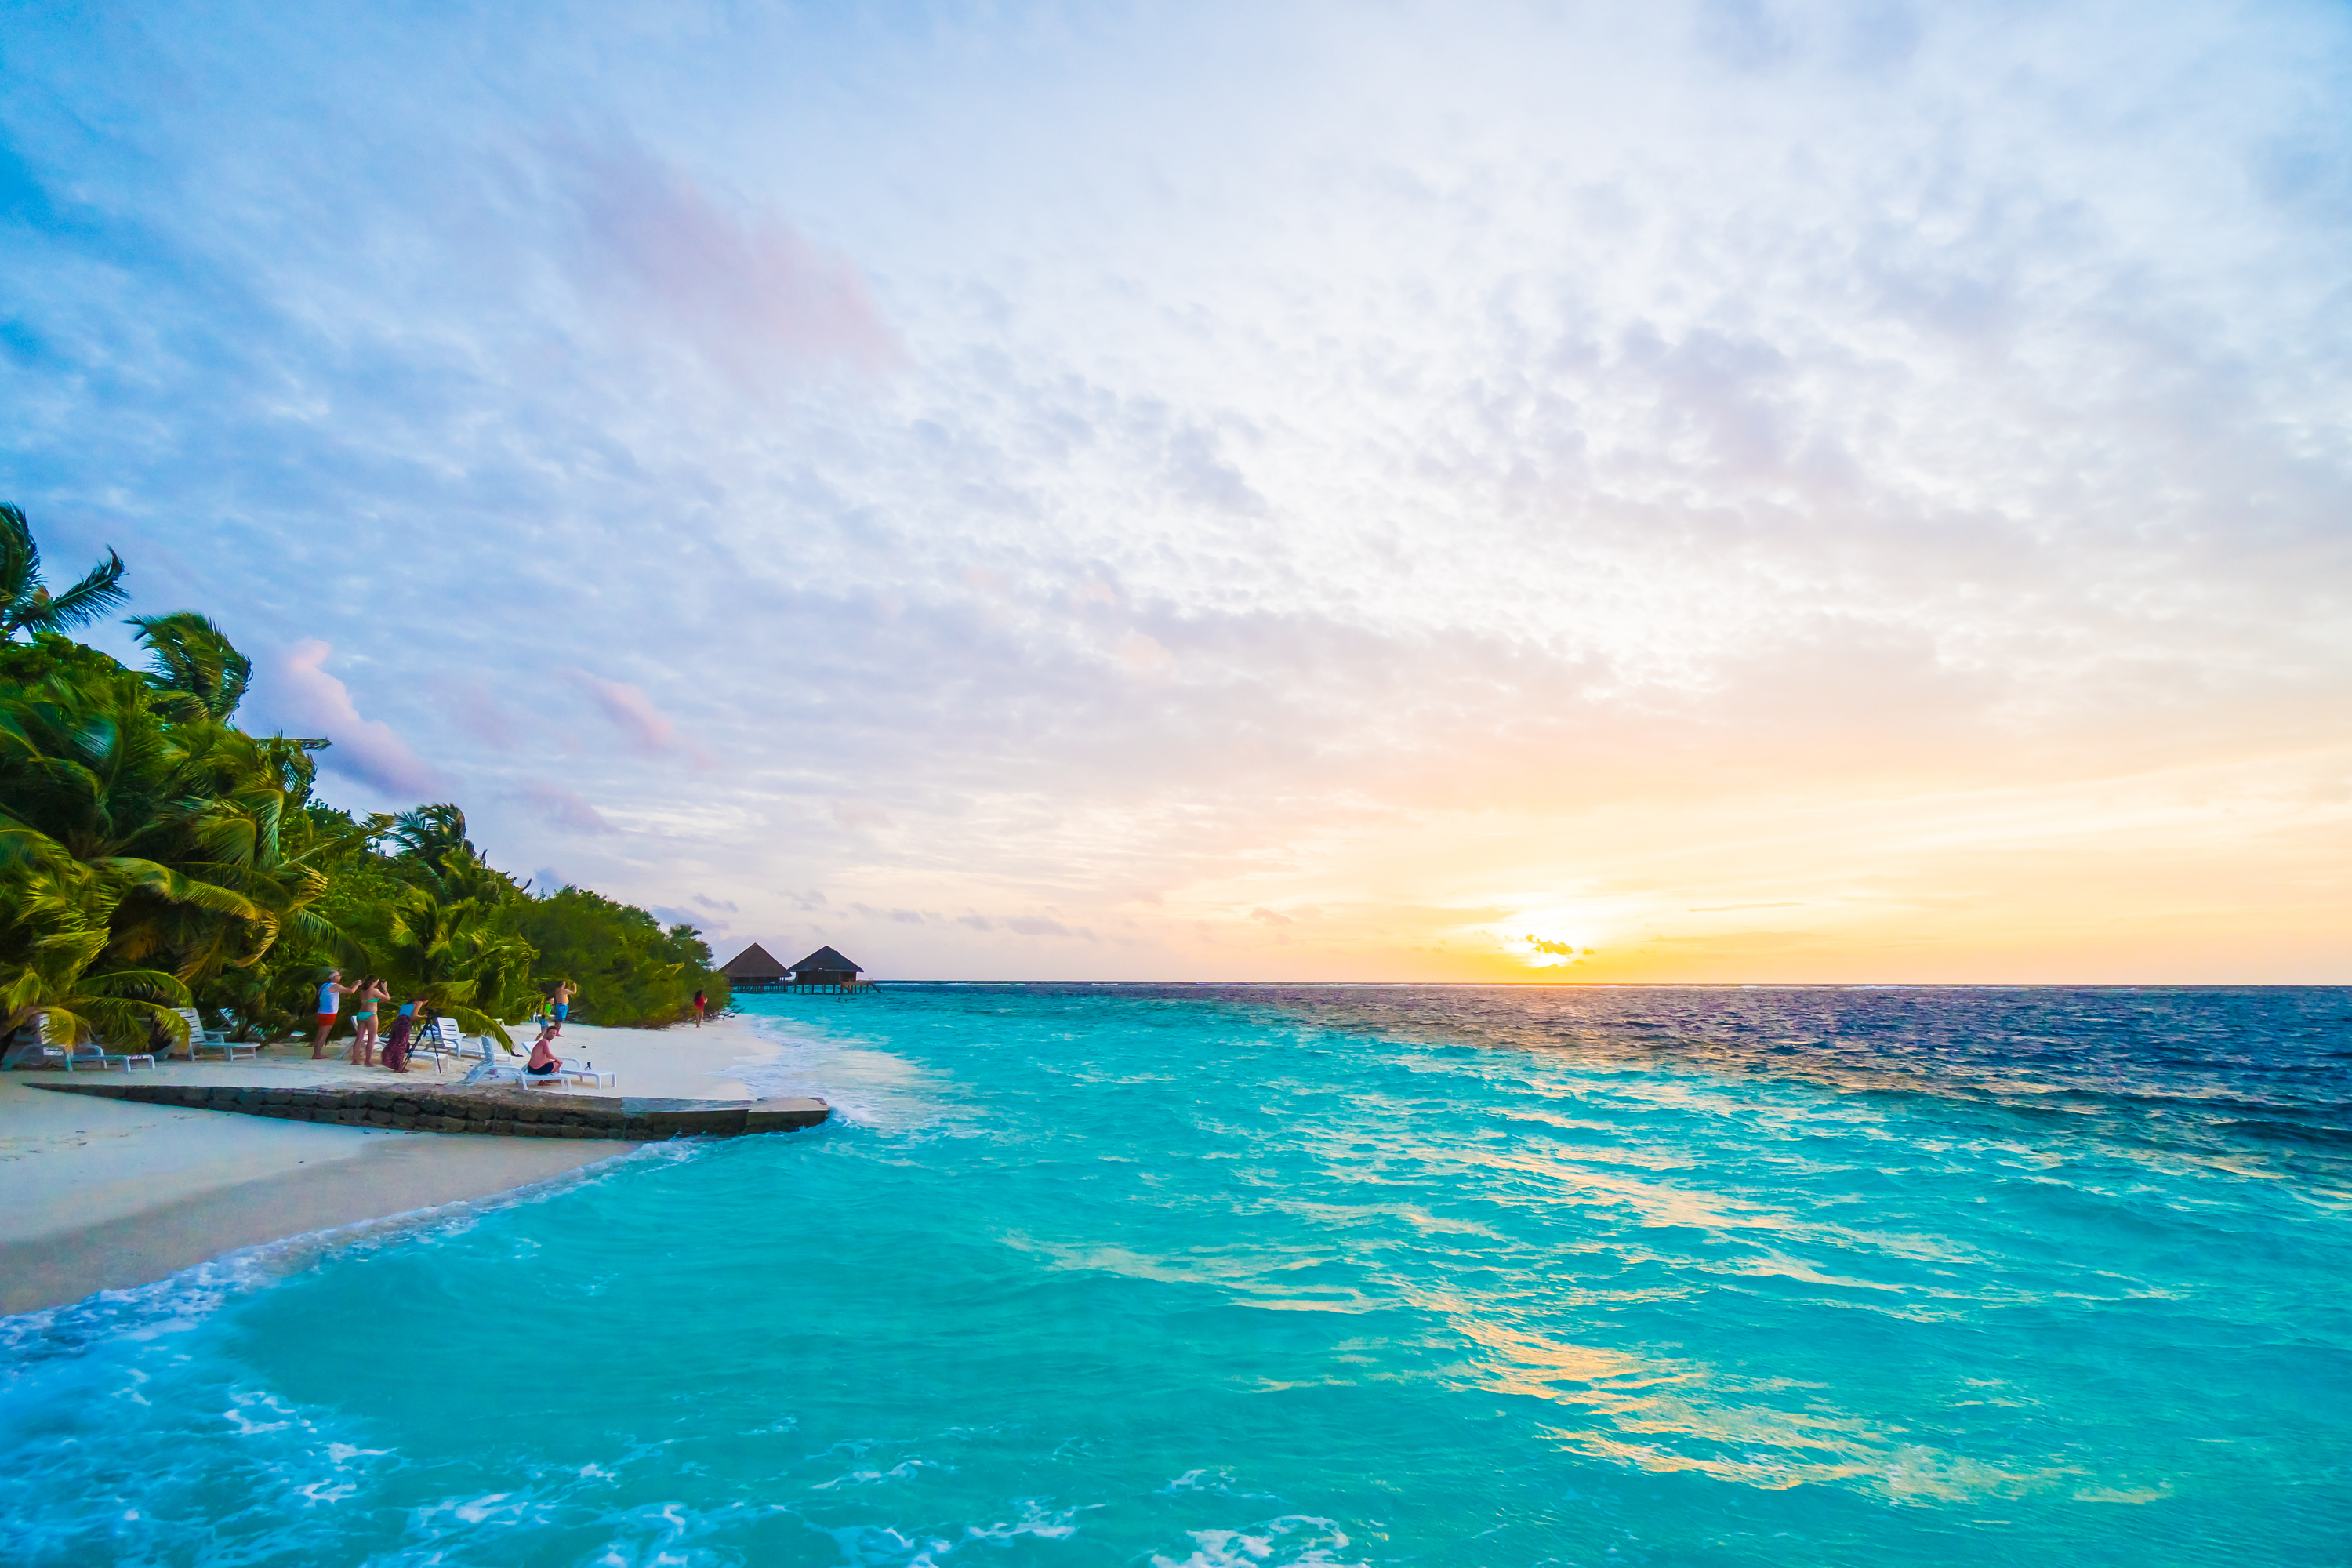 If you're getting ready to plan a trip to the Maldives, then you'll need to know the Maldives resorts to make the most out of your vacation. Have fun planning!